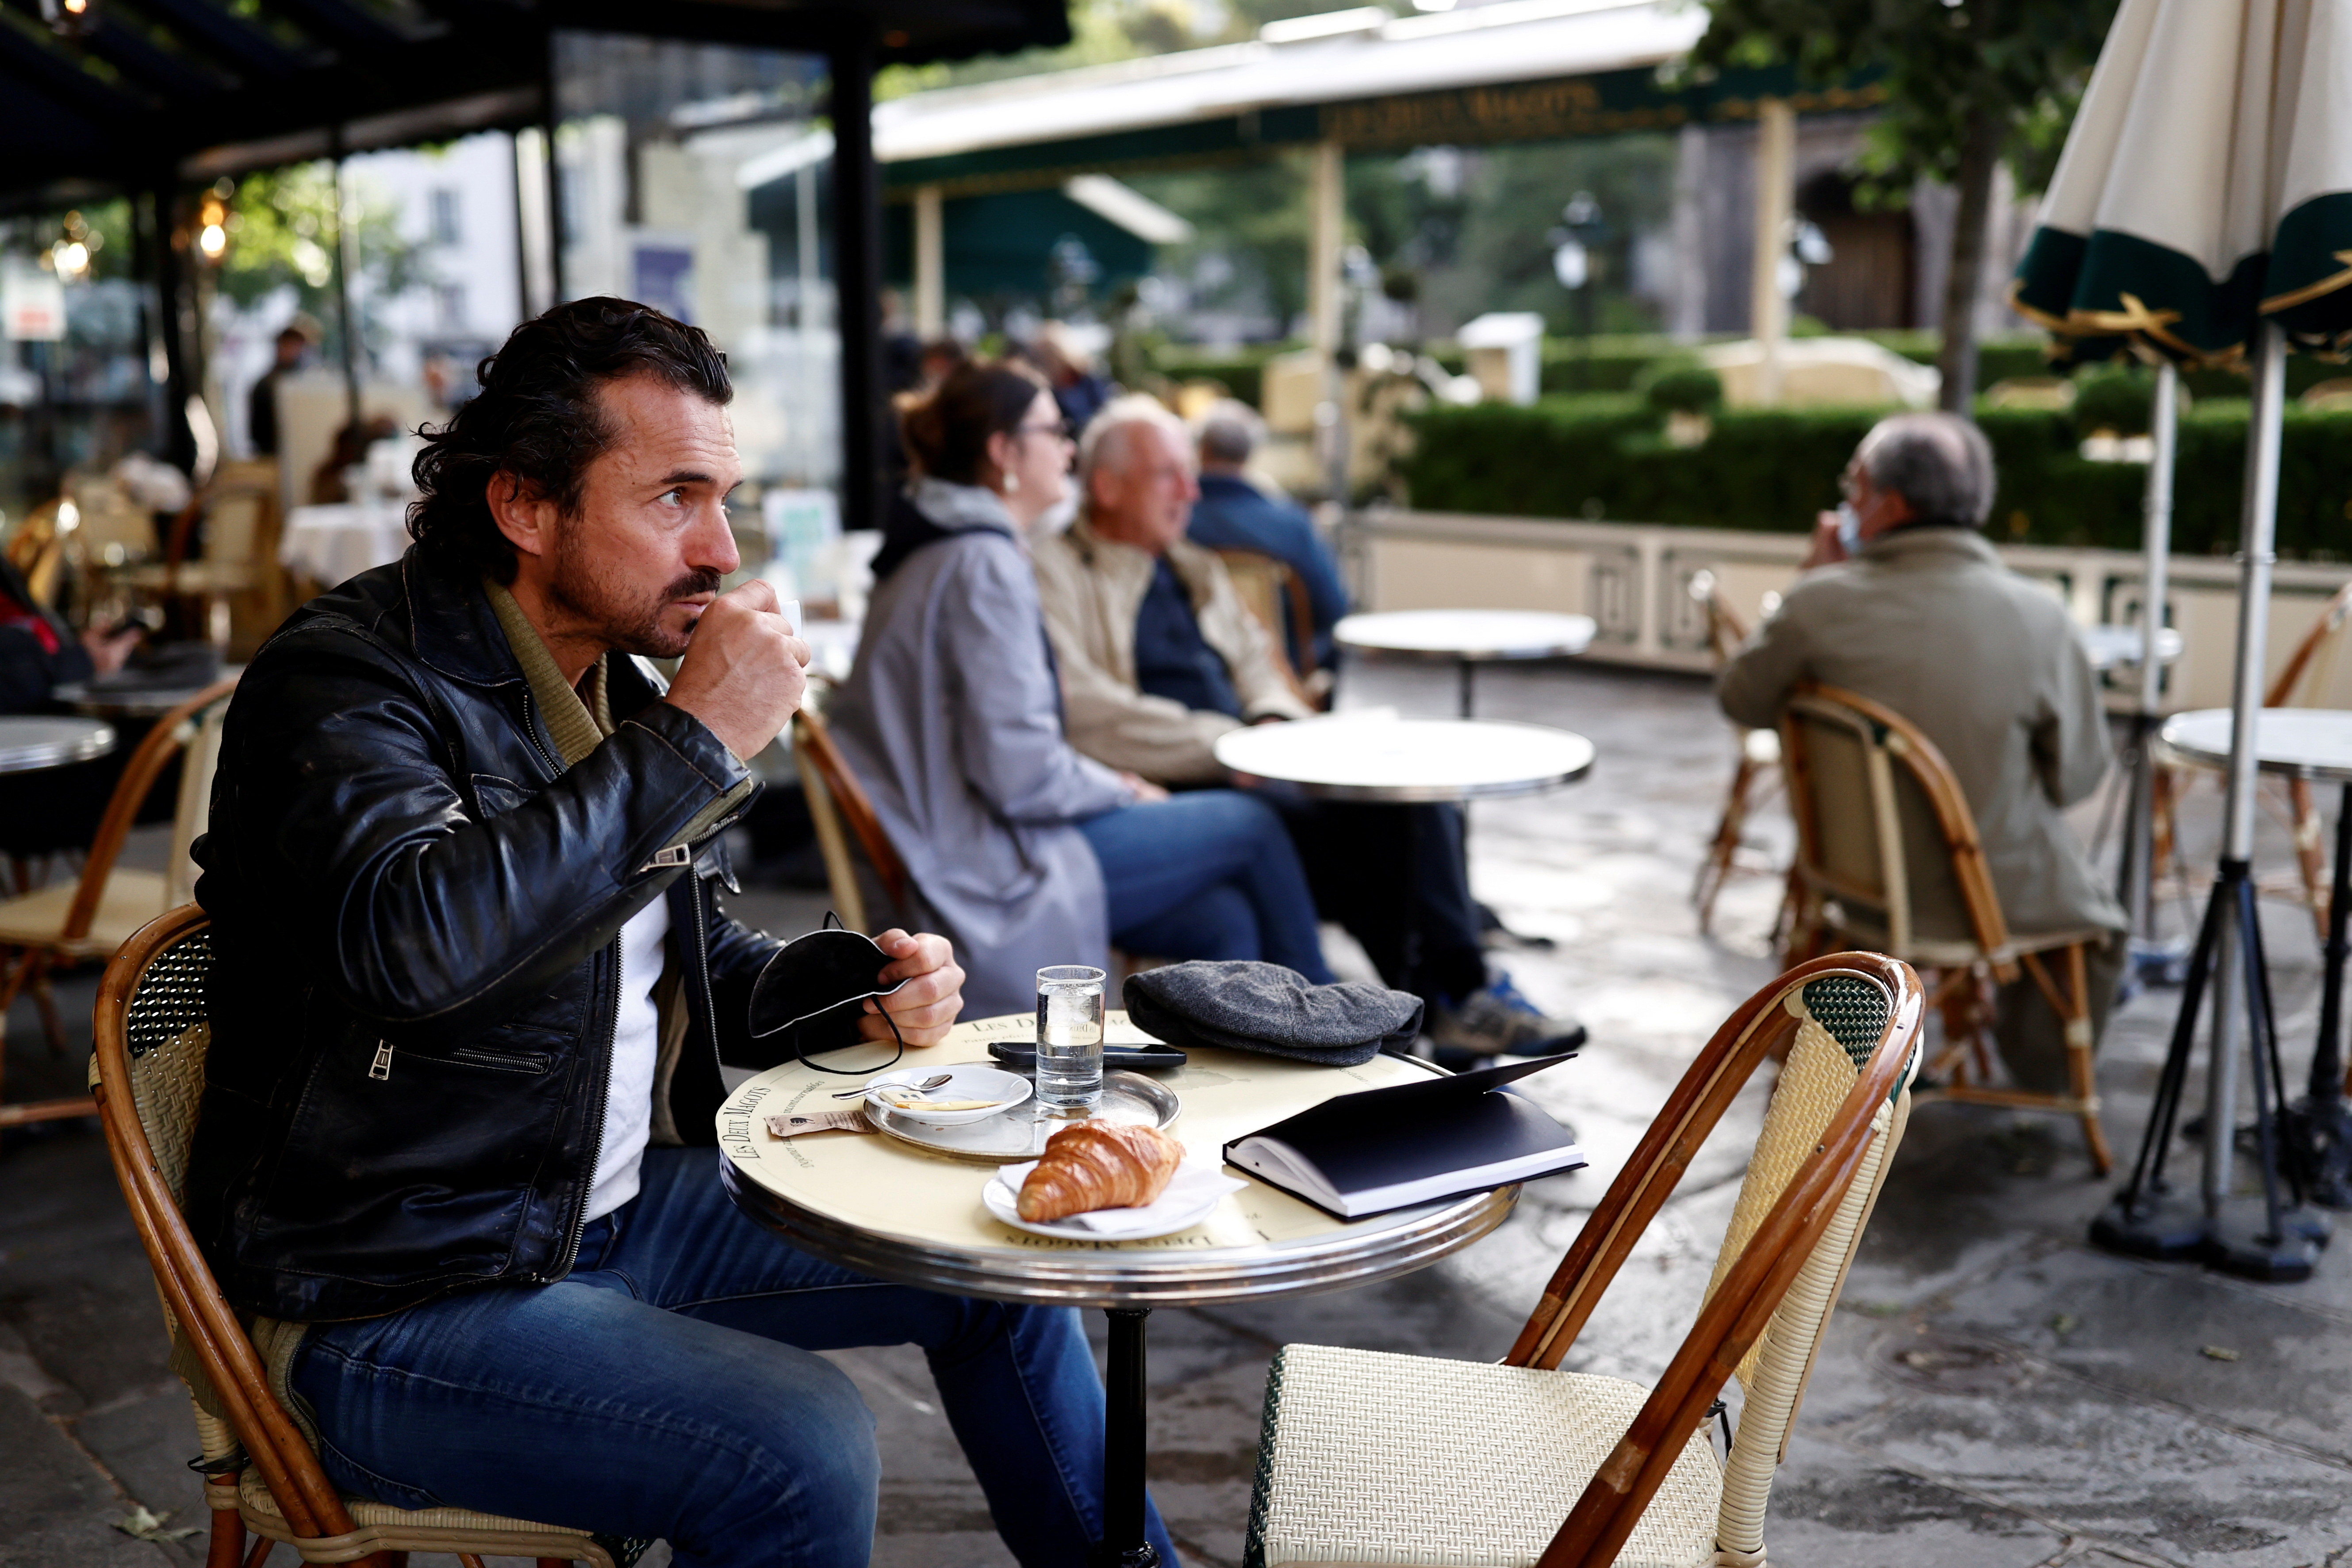 A customer enjoys a coffee on a terrace of the cafe and restaurant Les Deux Magots in Paris as cafes, bars and restaurants reopen after closing down for months amid the coronavirus disease (COVID-19) outbreak in France, May 19, 2021. REUTERS/Christian Hartmann